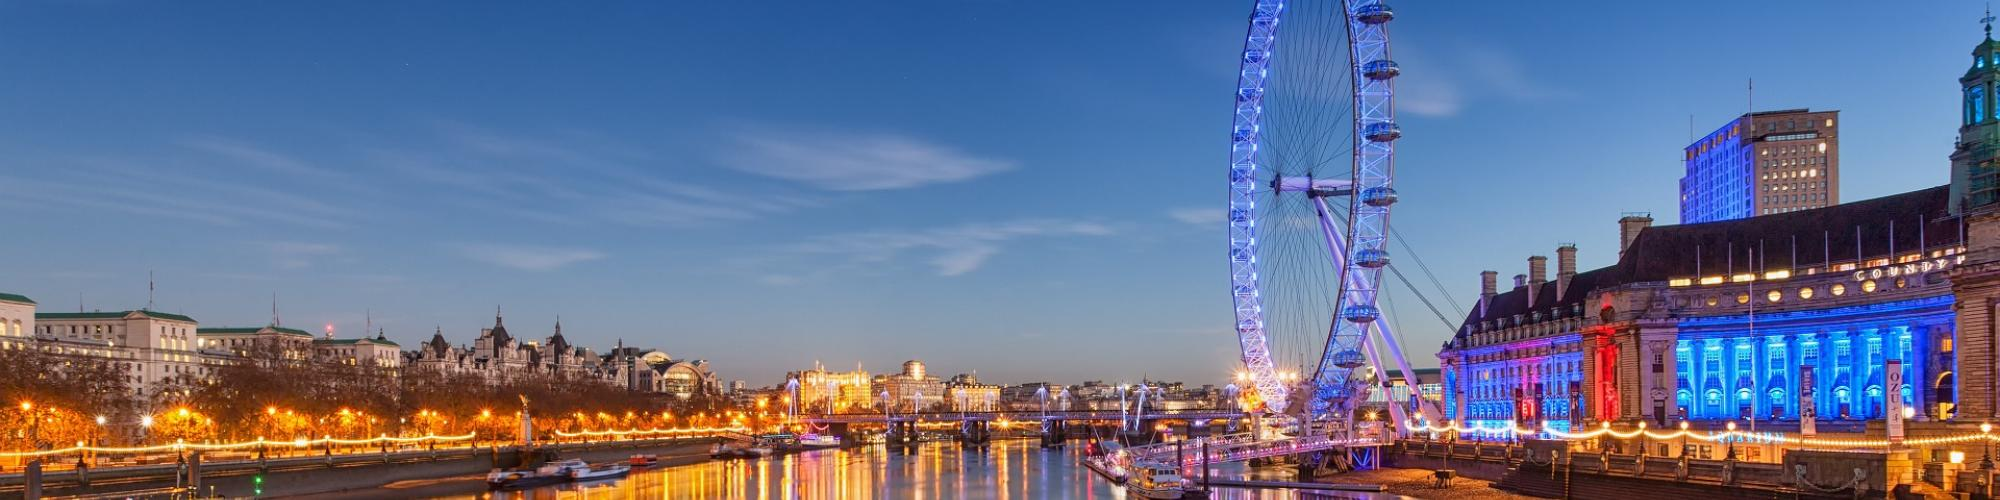 London Reise - London Eye